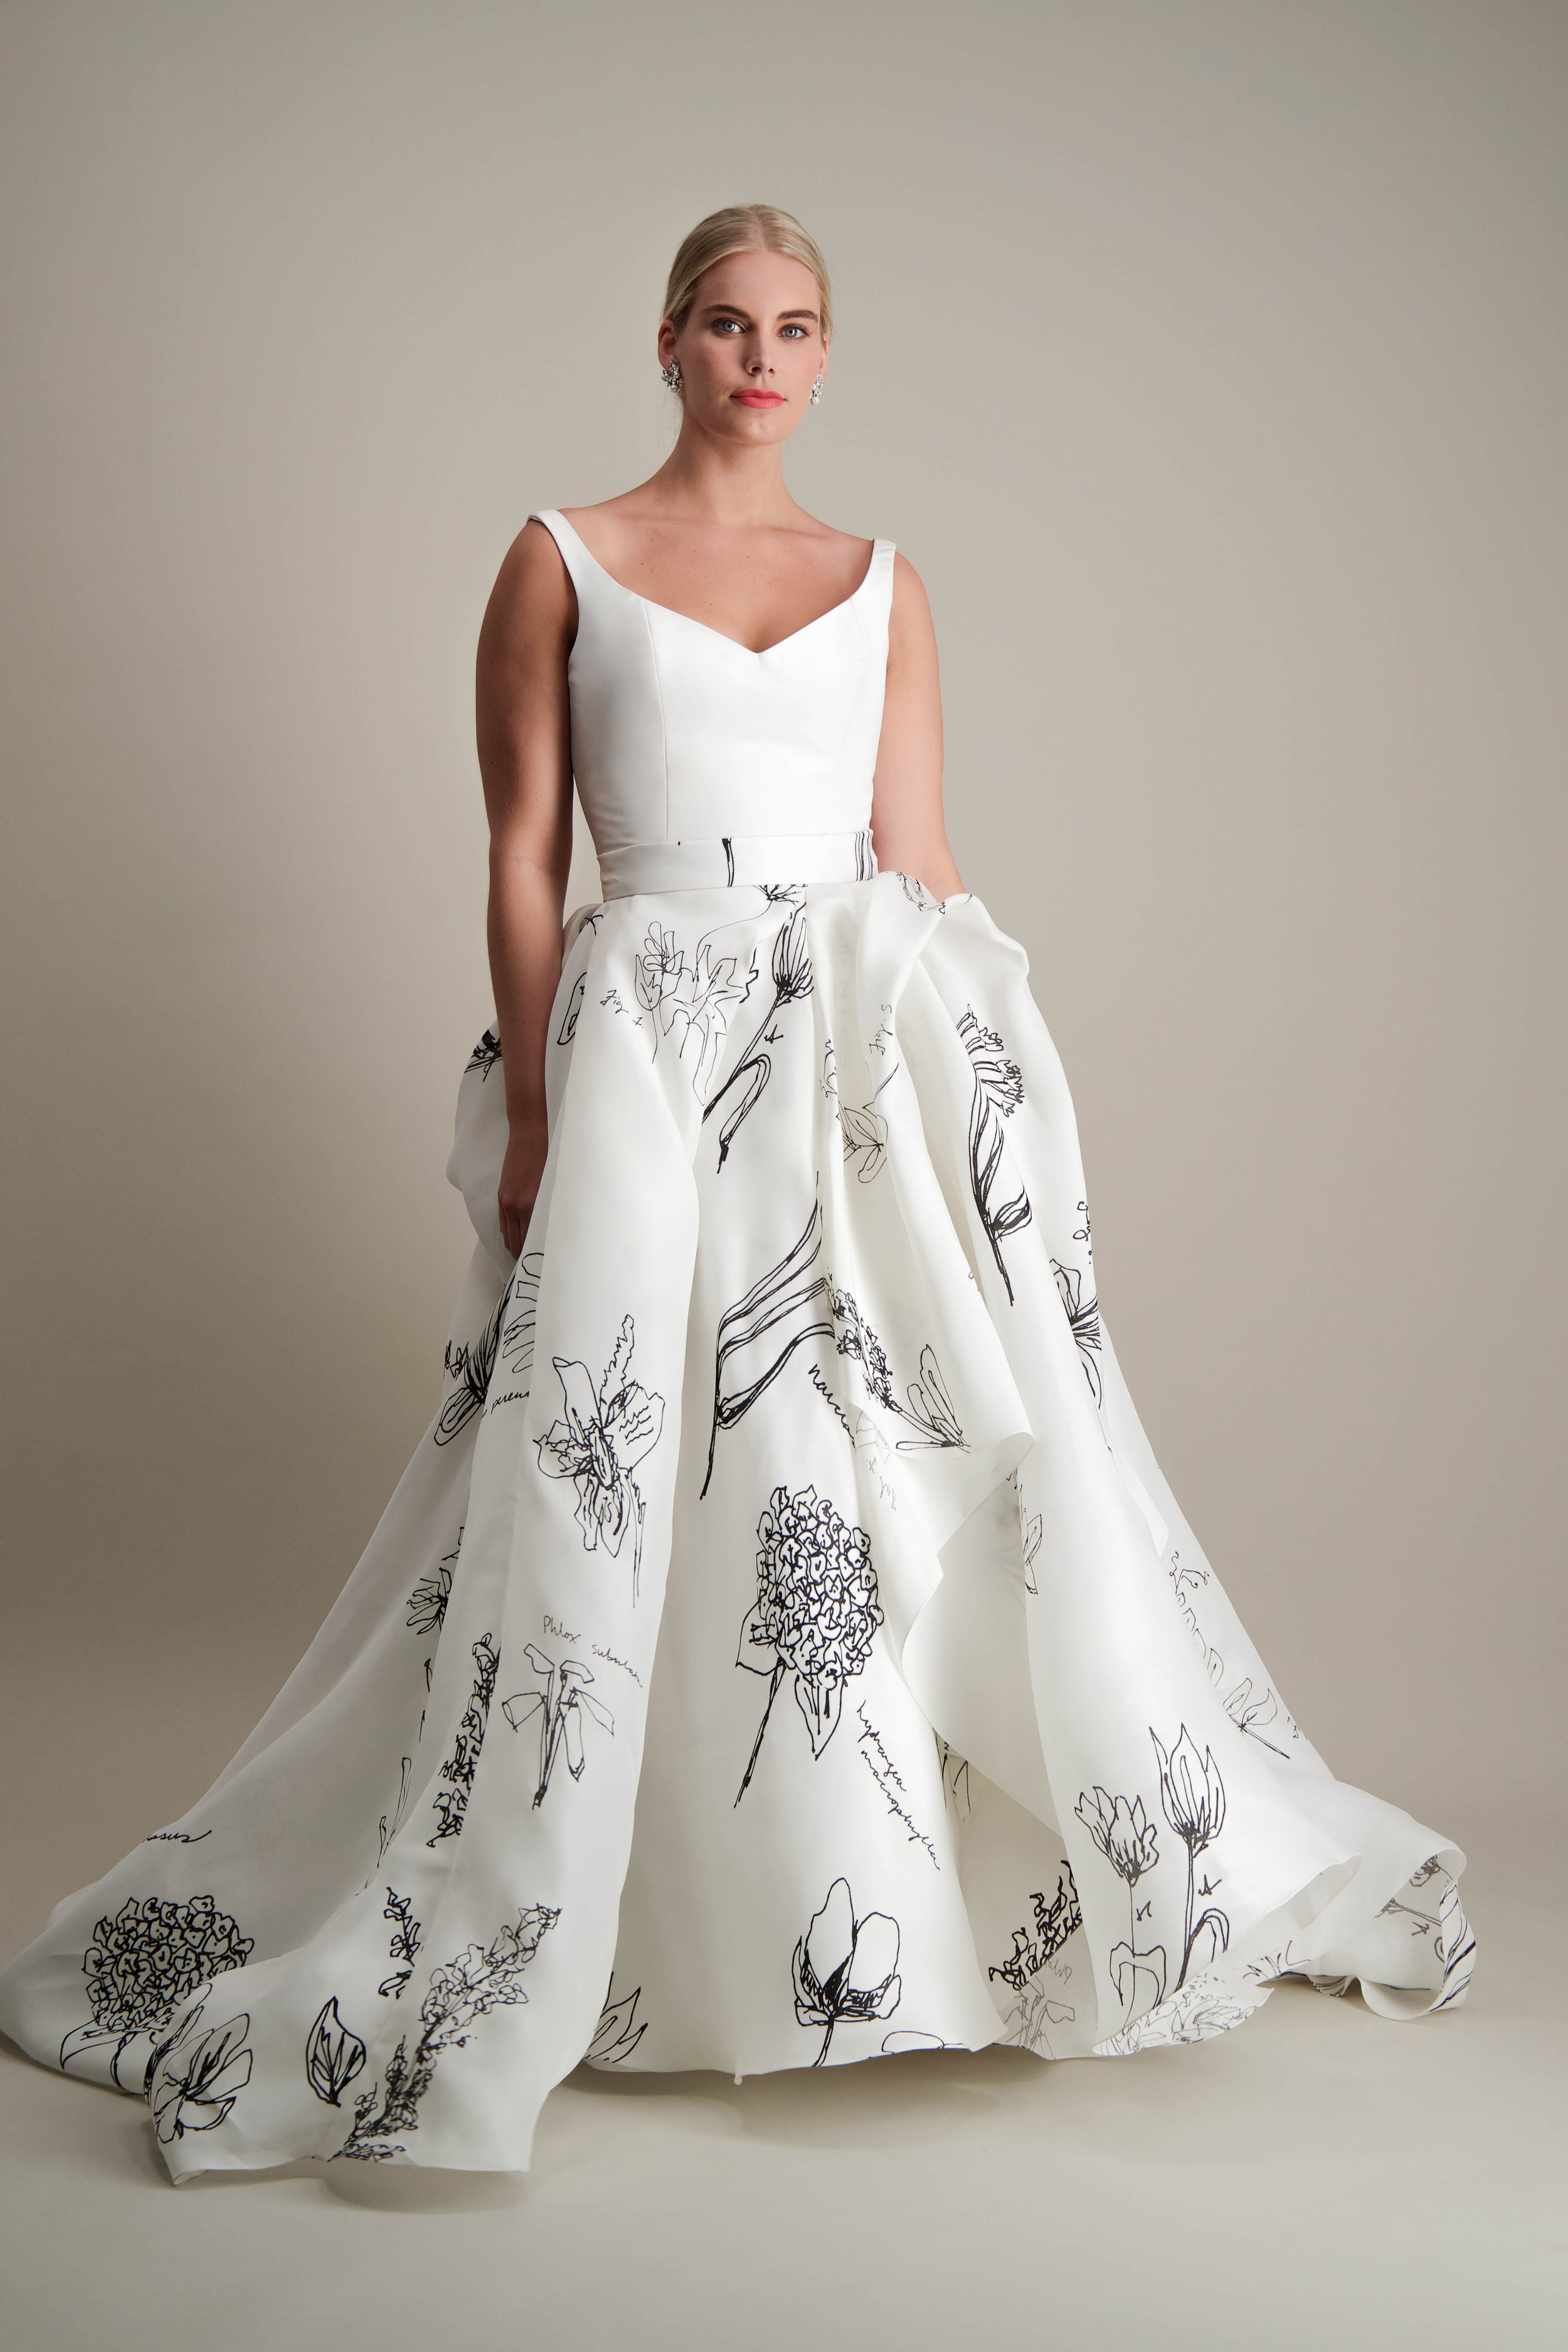 anthorium-skirt-ball-gown-printed-black-and-white-gown-4.jpg